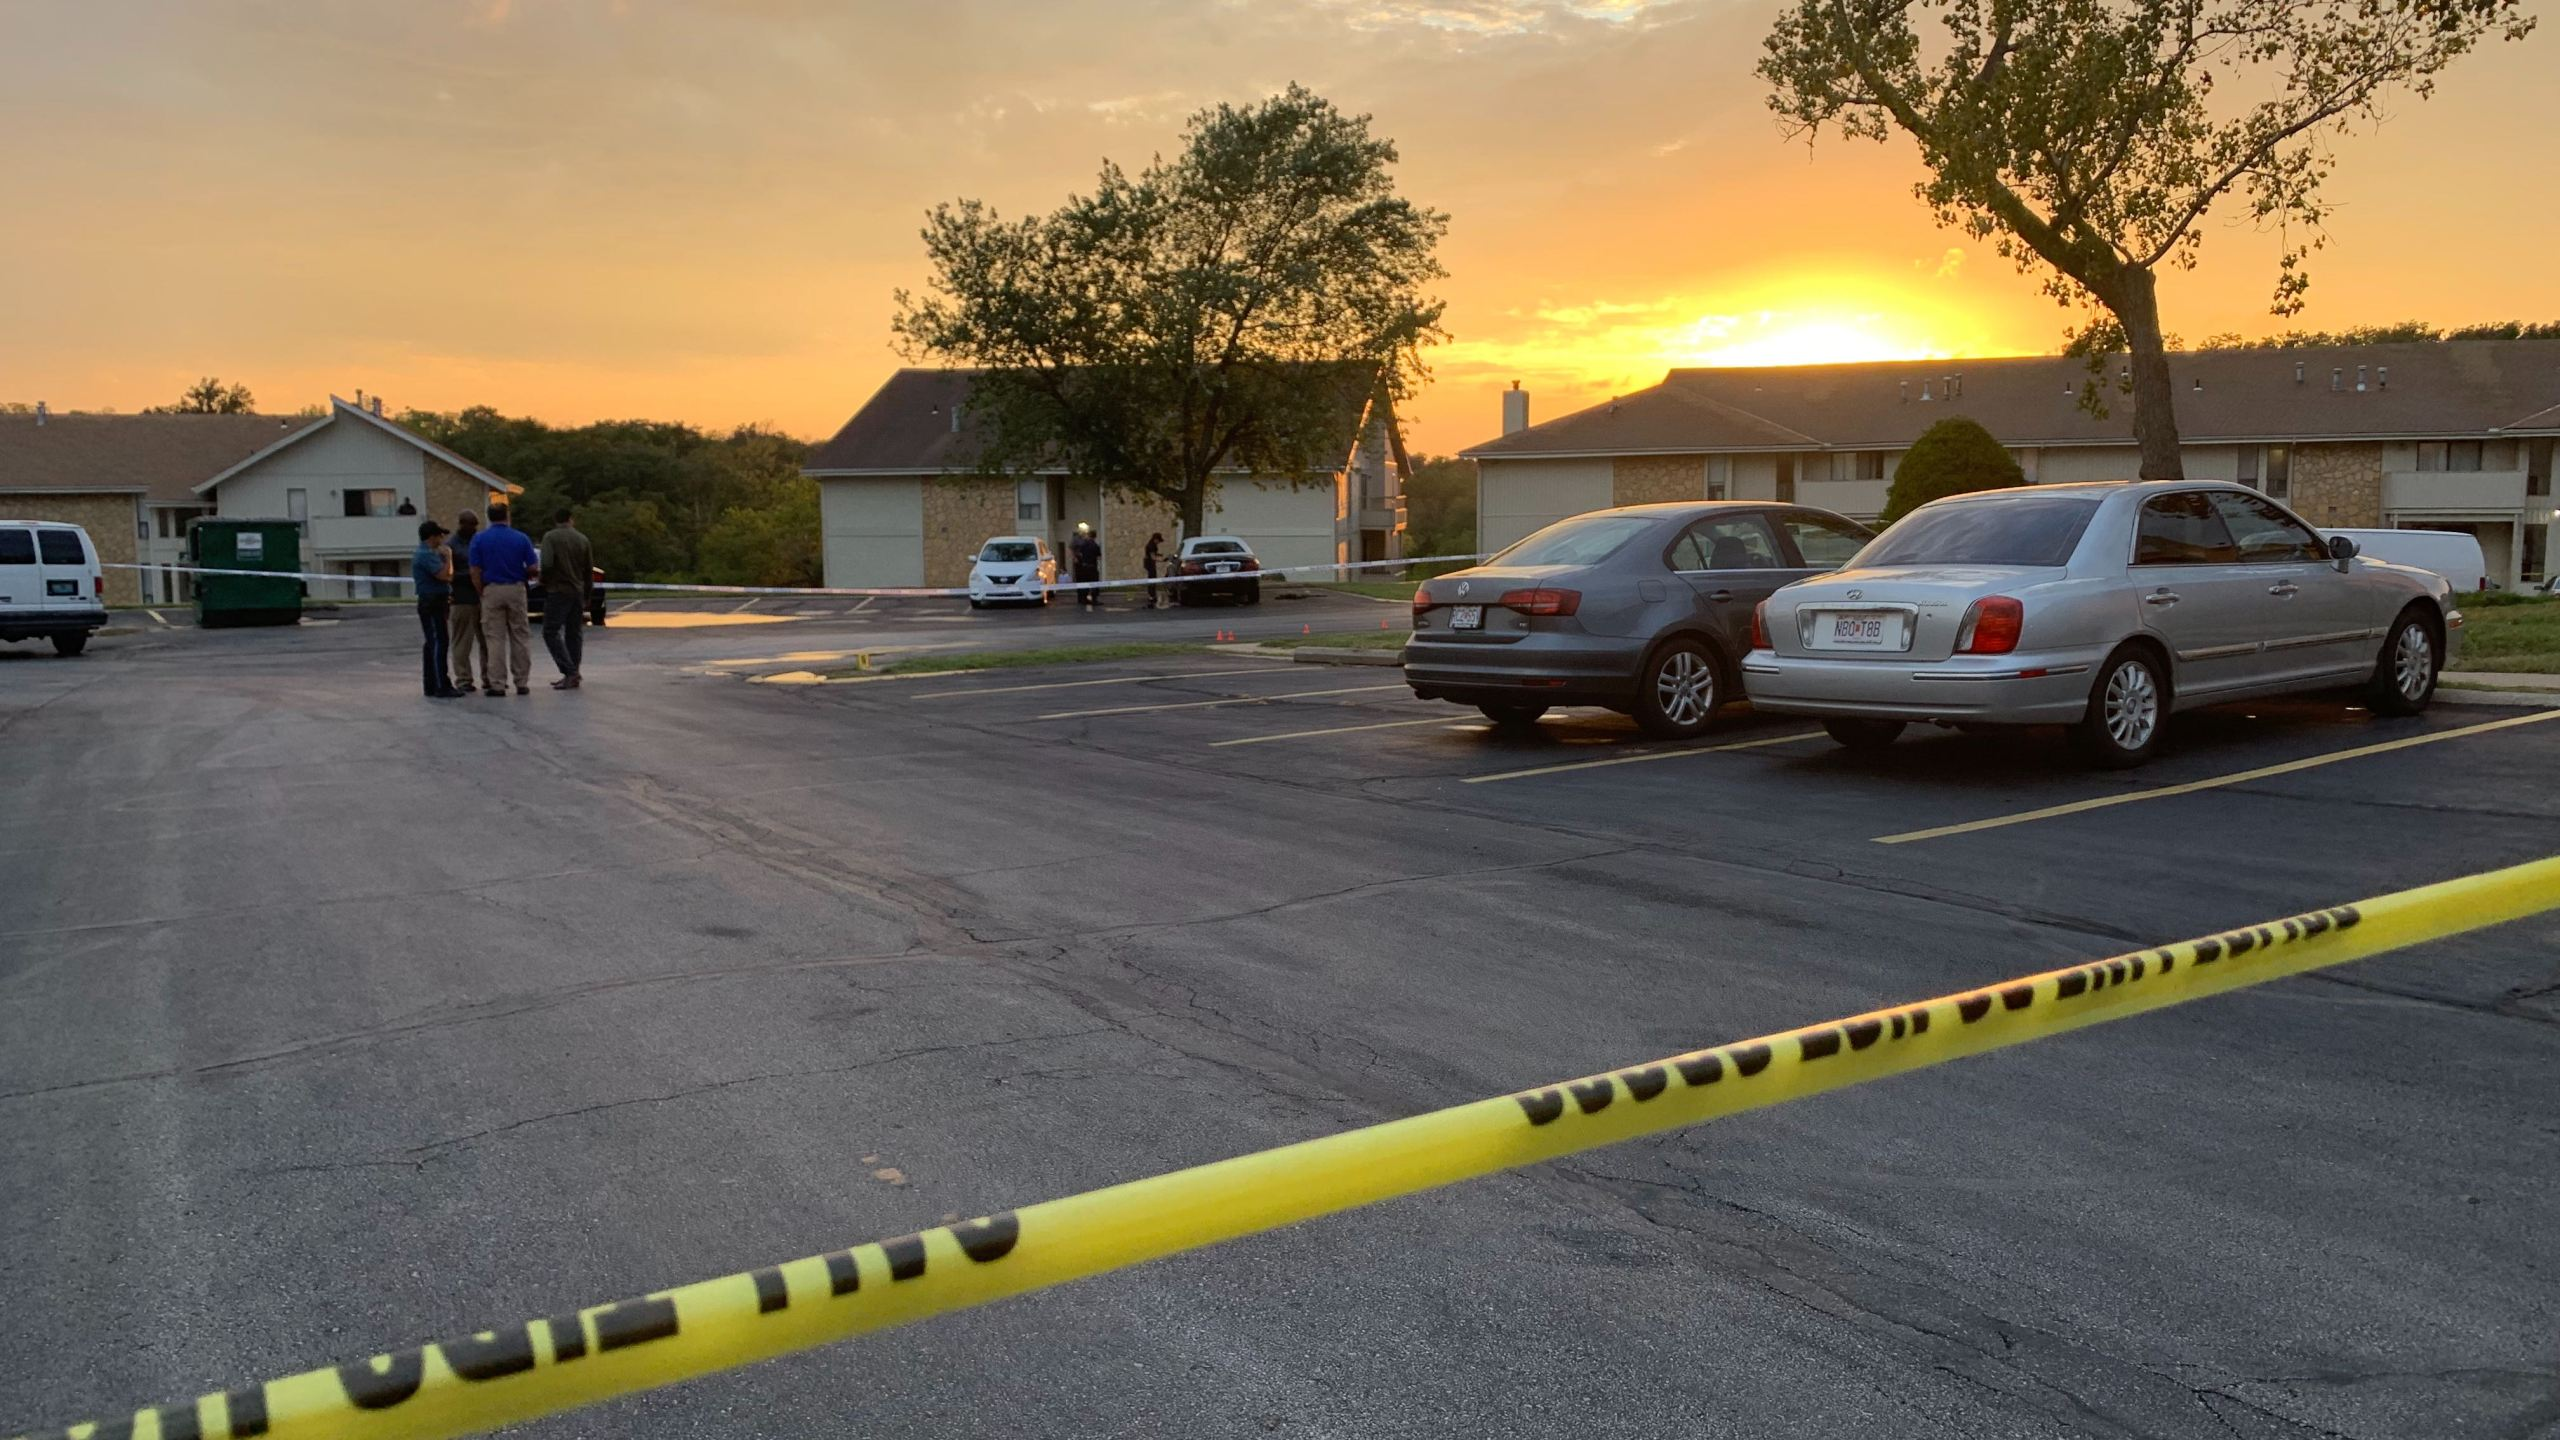 Homicide 98th and Willow at the View High Lake Apartments